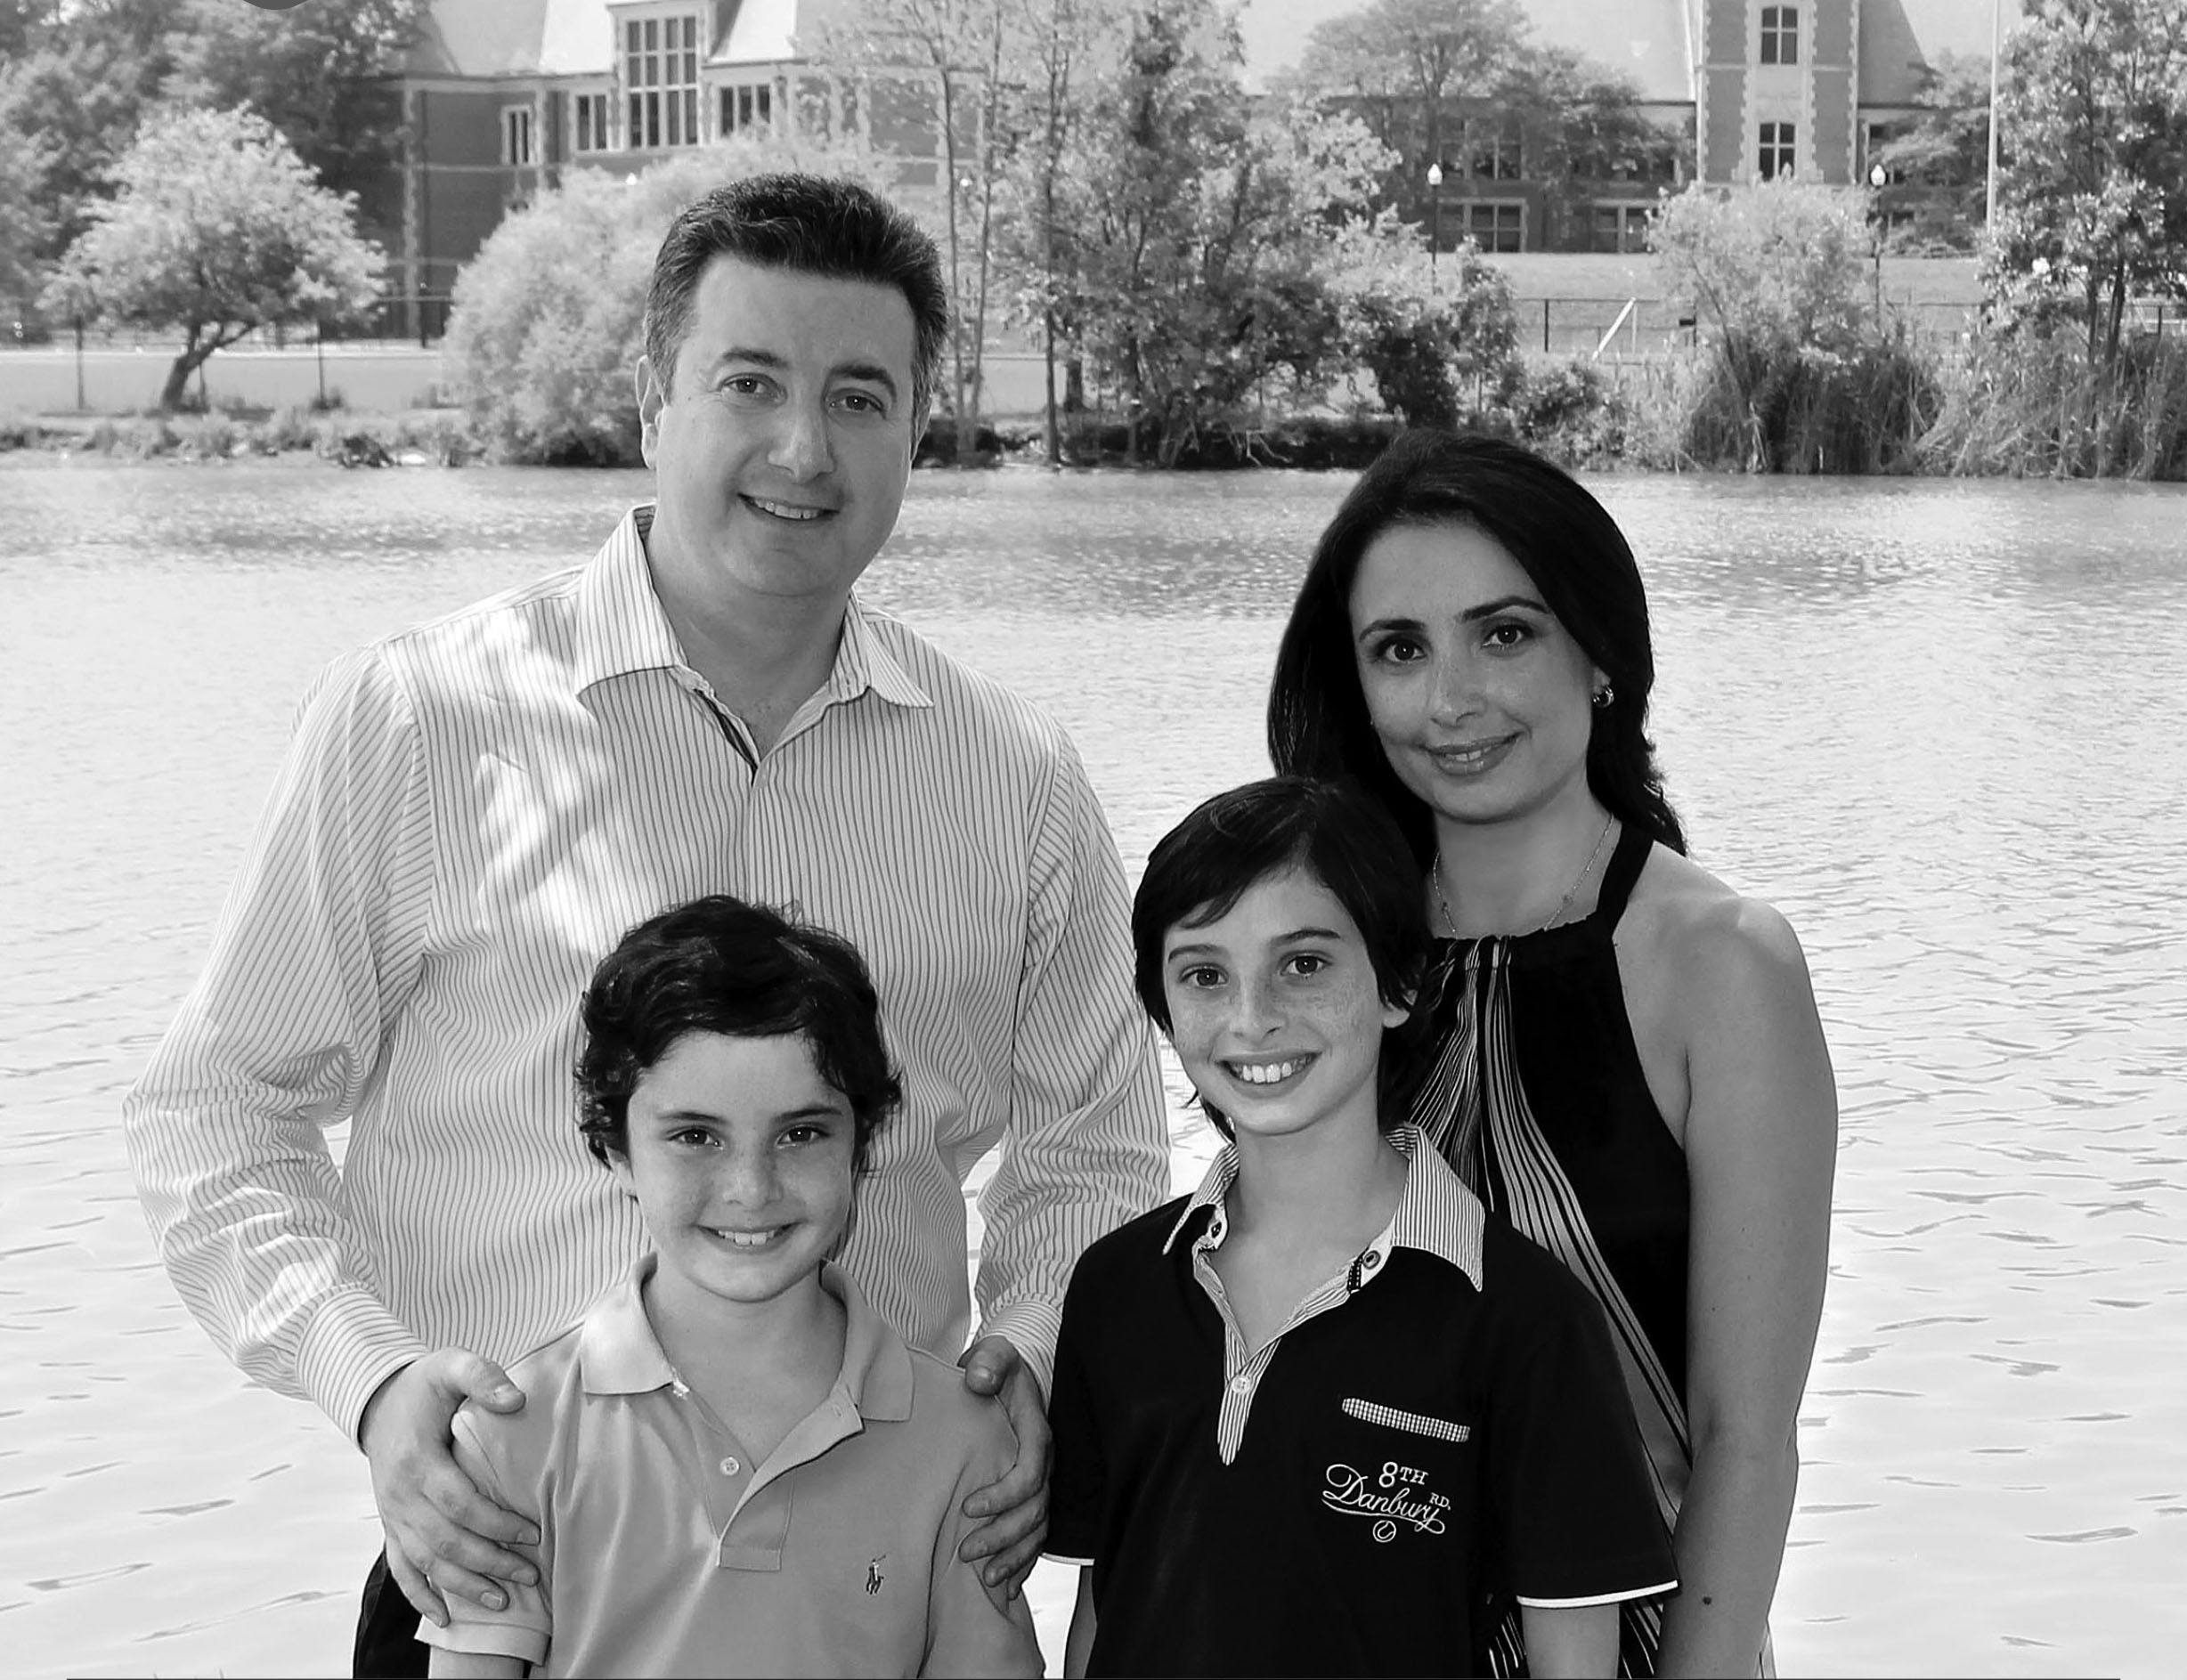 Dr. Sherman and his family